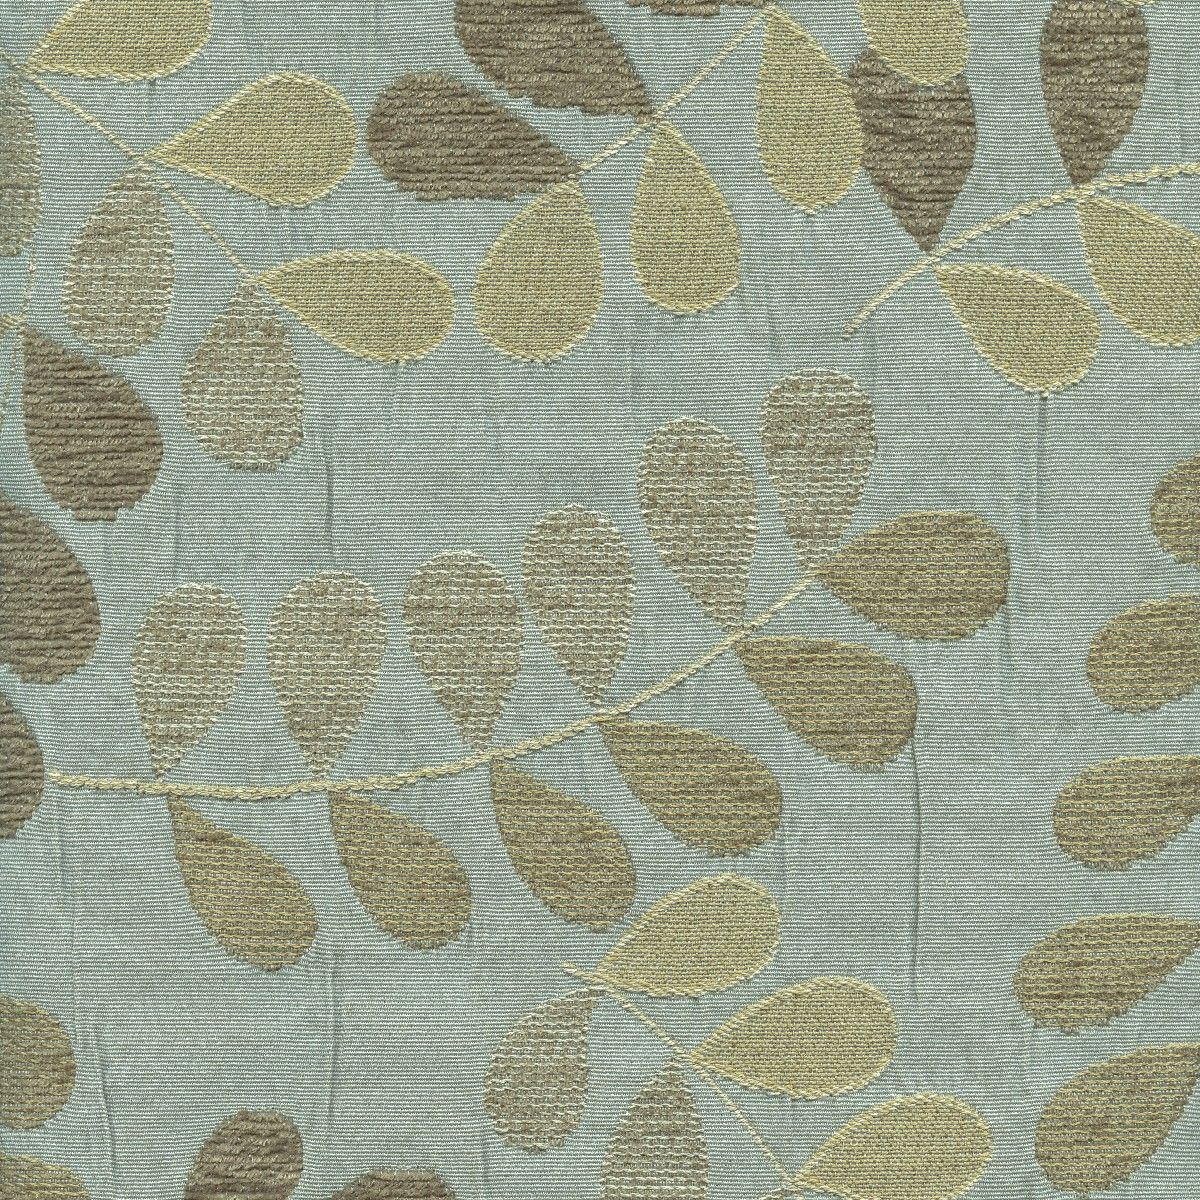 30704 - Mystic (Canopy) Fabric with multi-color leaves. Blue, tan ...